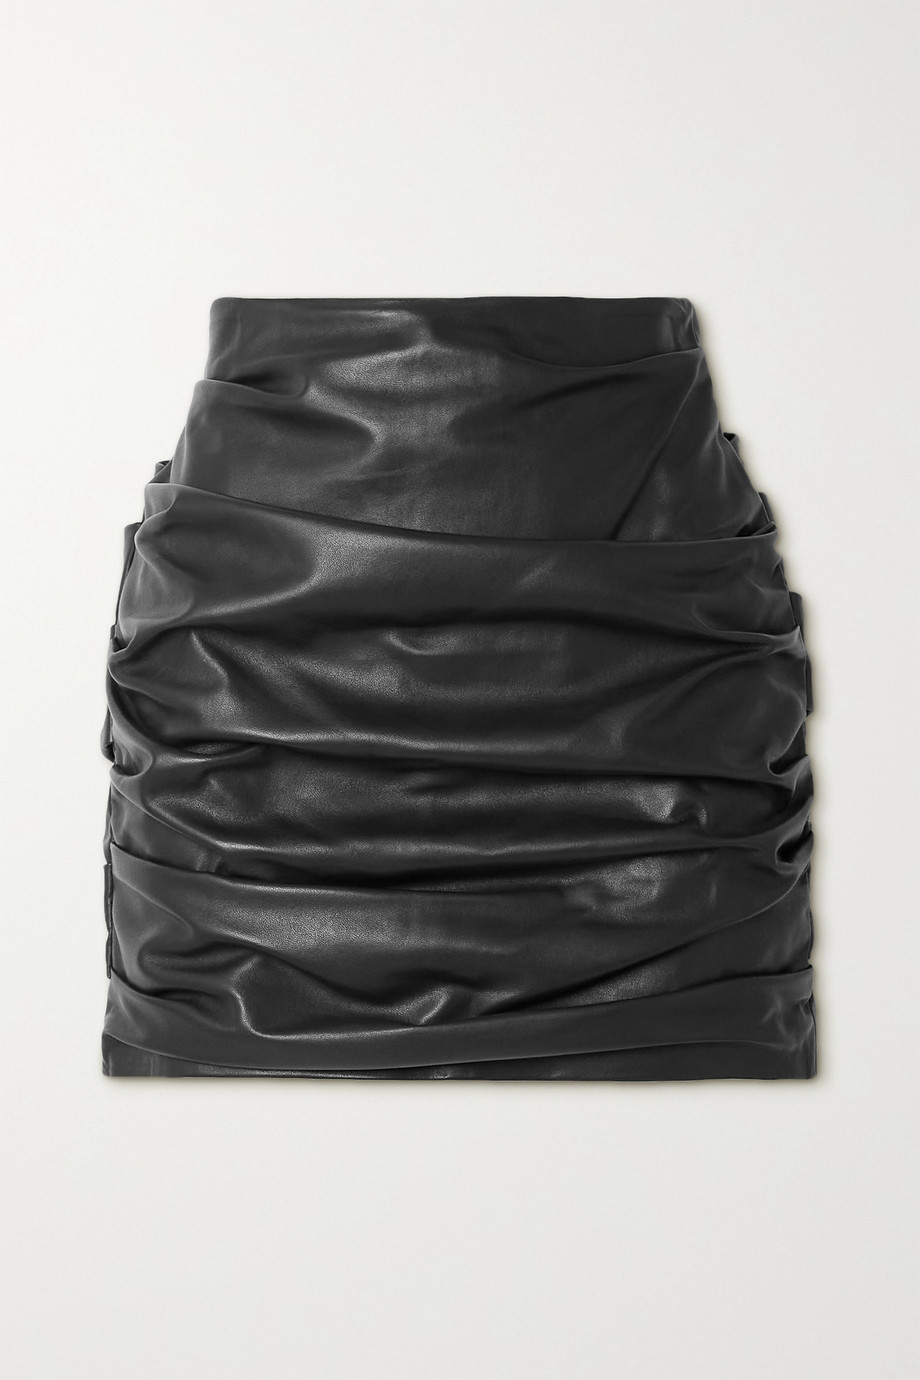 Dolce & Gabbana Ruched leather mini skirt